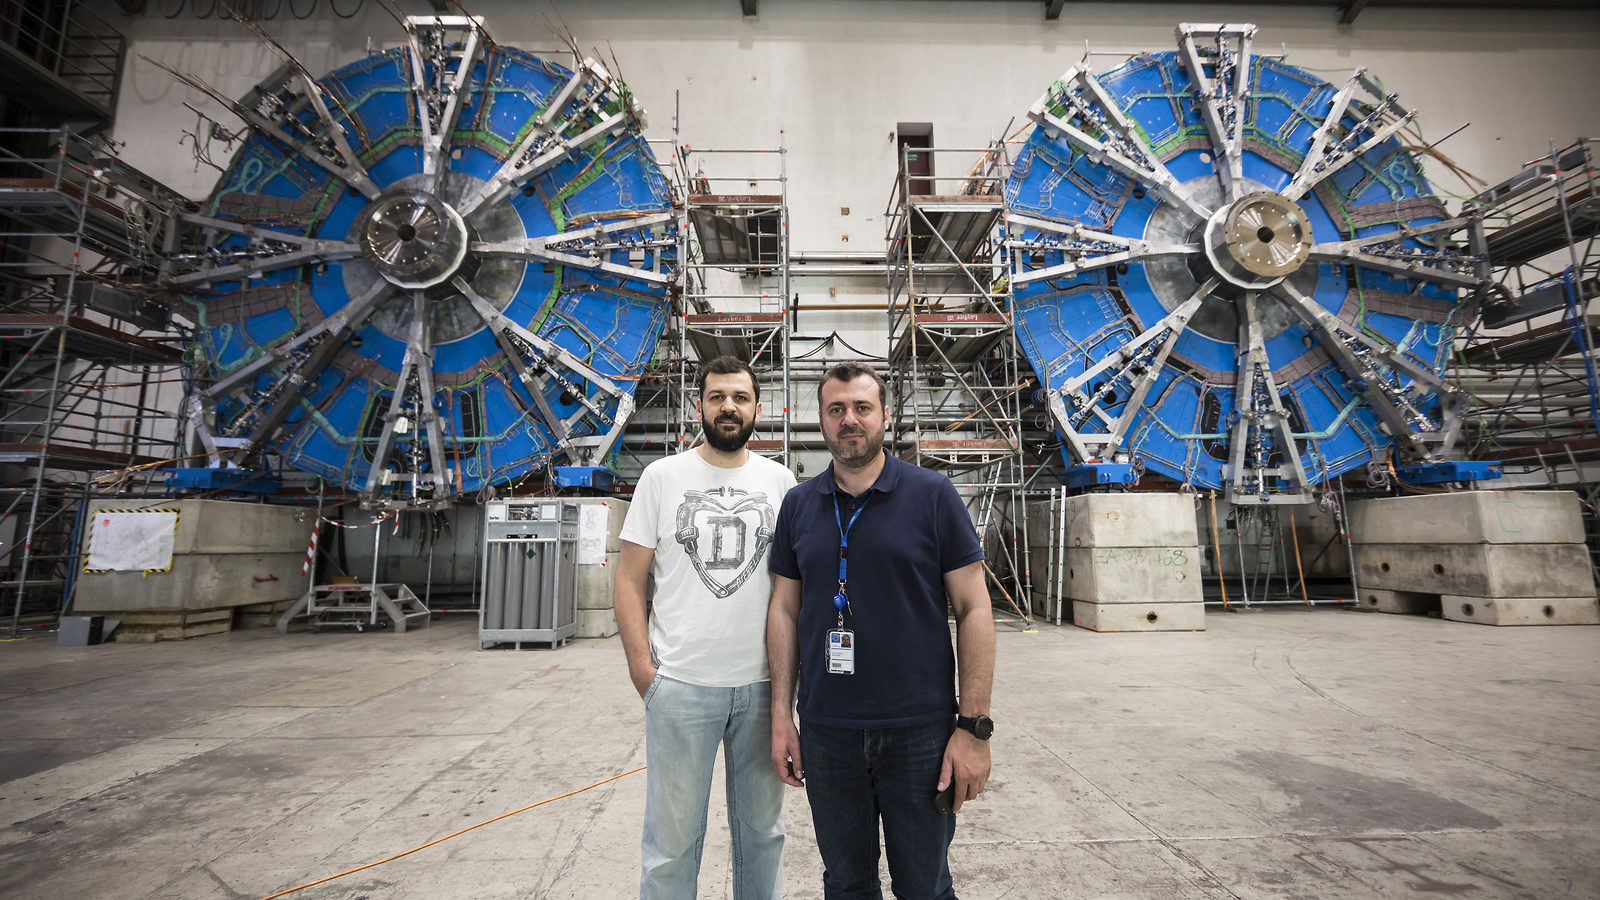 Konstantinos and George at CERN